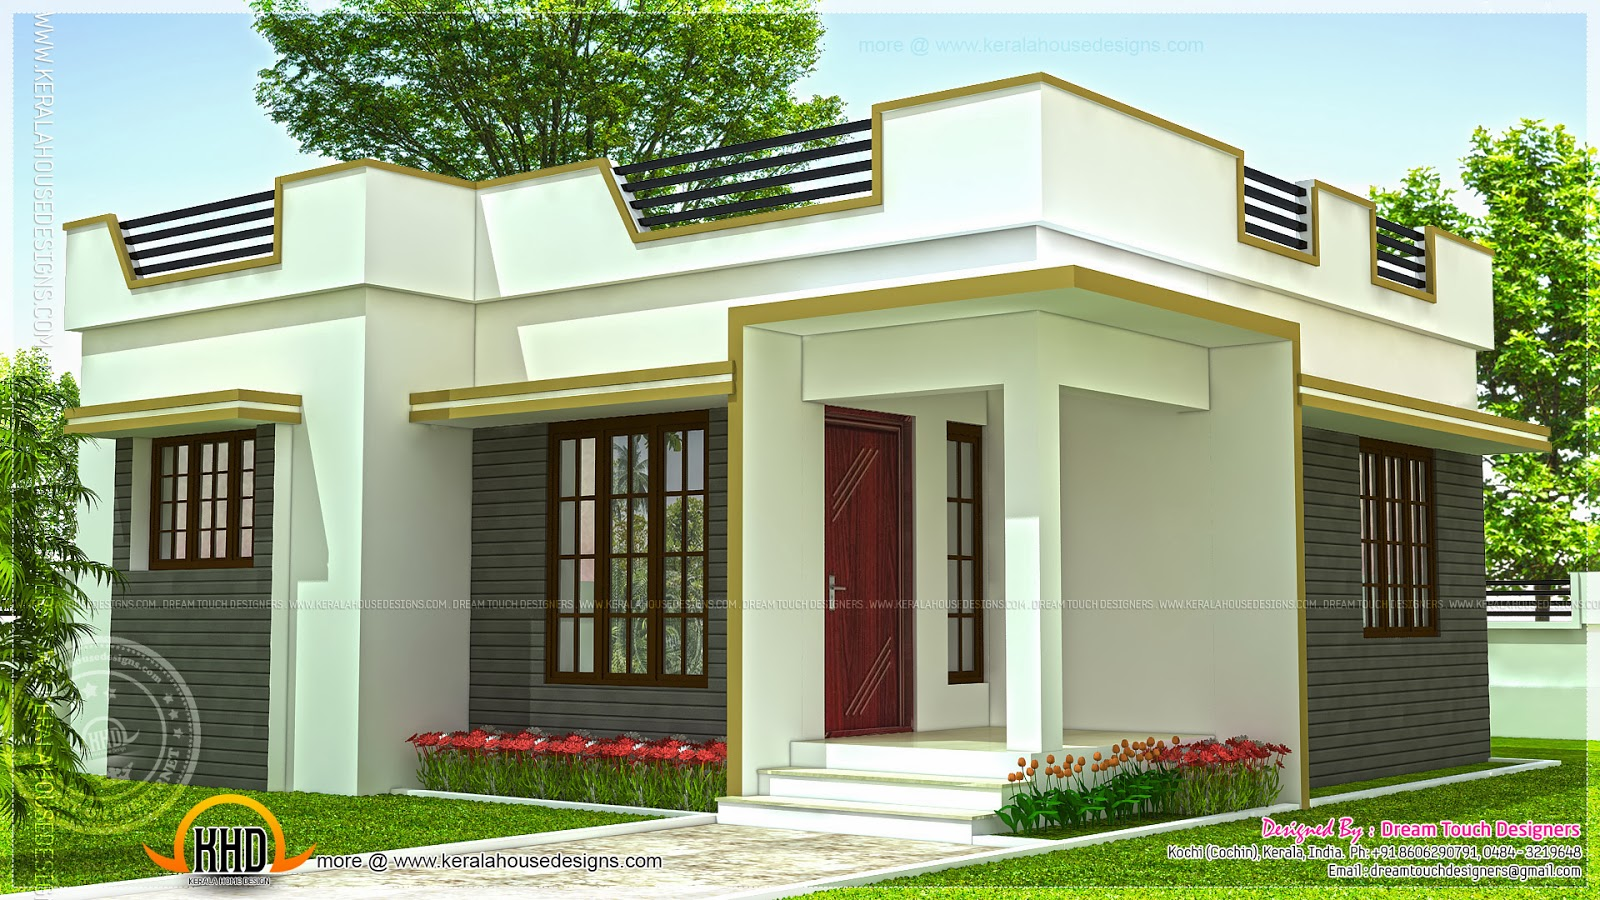 Tamil Nadu House Plans 1000 Sq Ft L 373ca2e589f80dea Jpg 1600 888 Small Houses Pinterest Simple House House And Smallest House